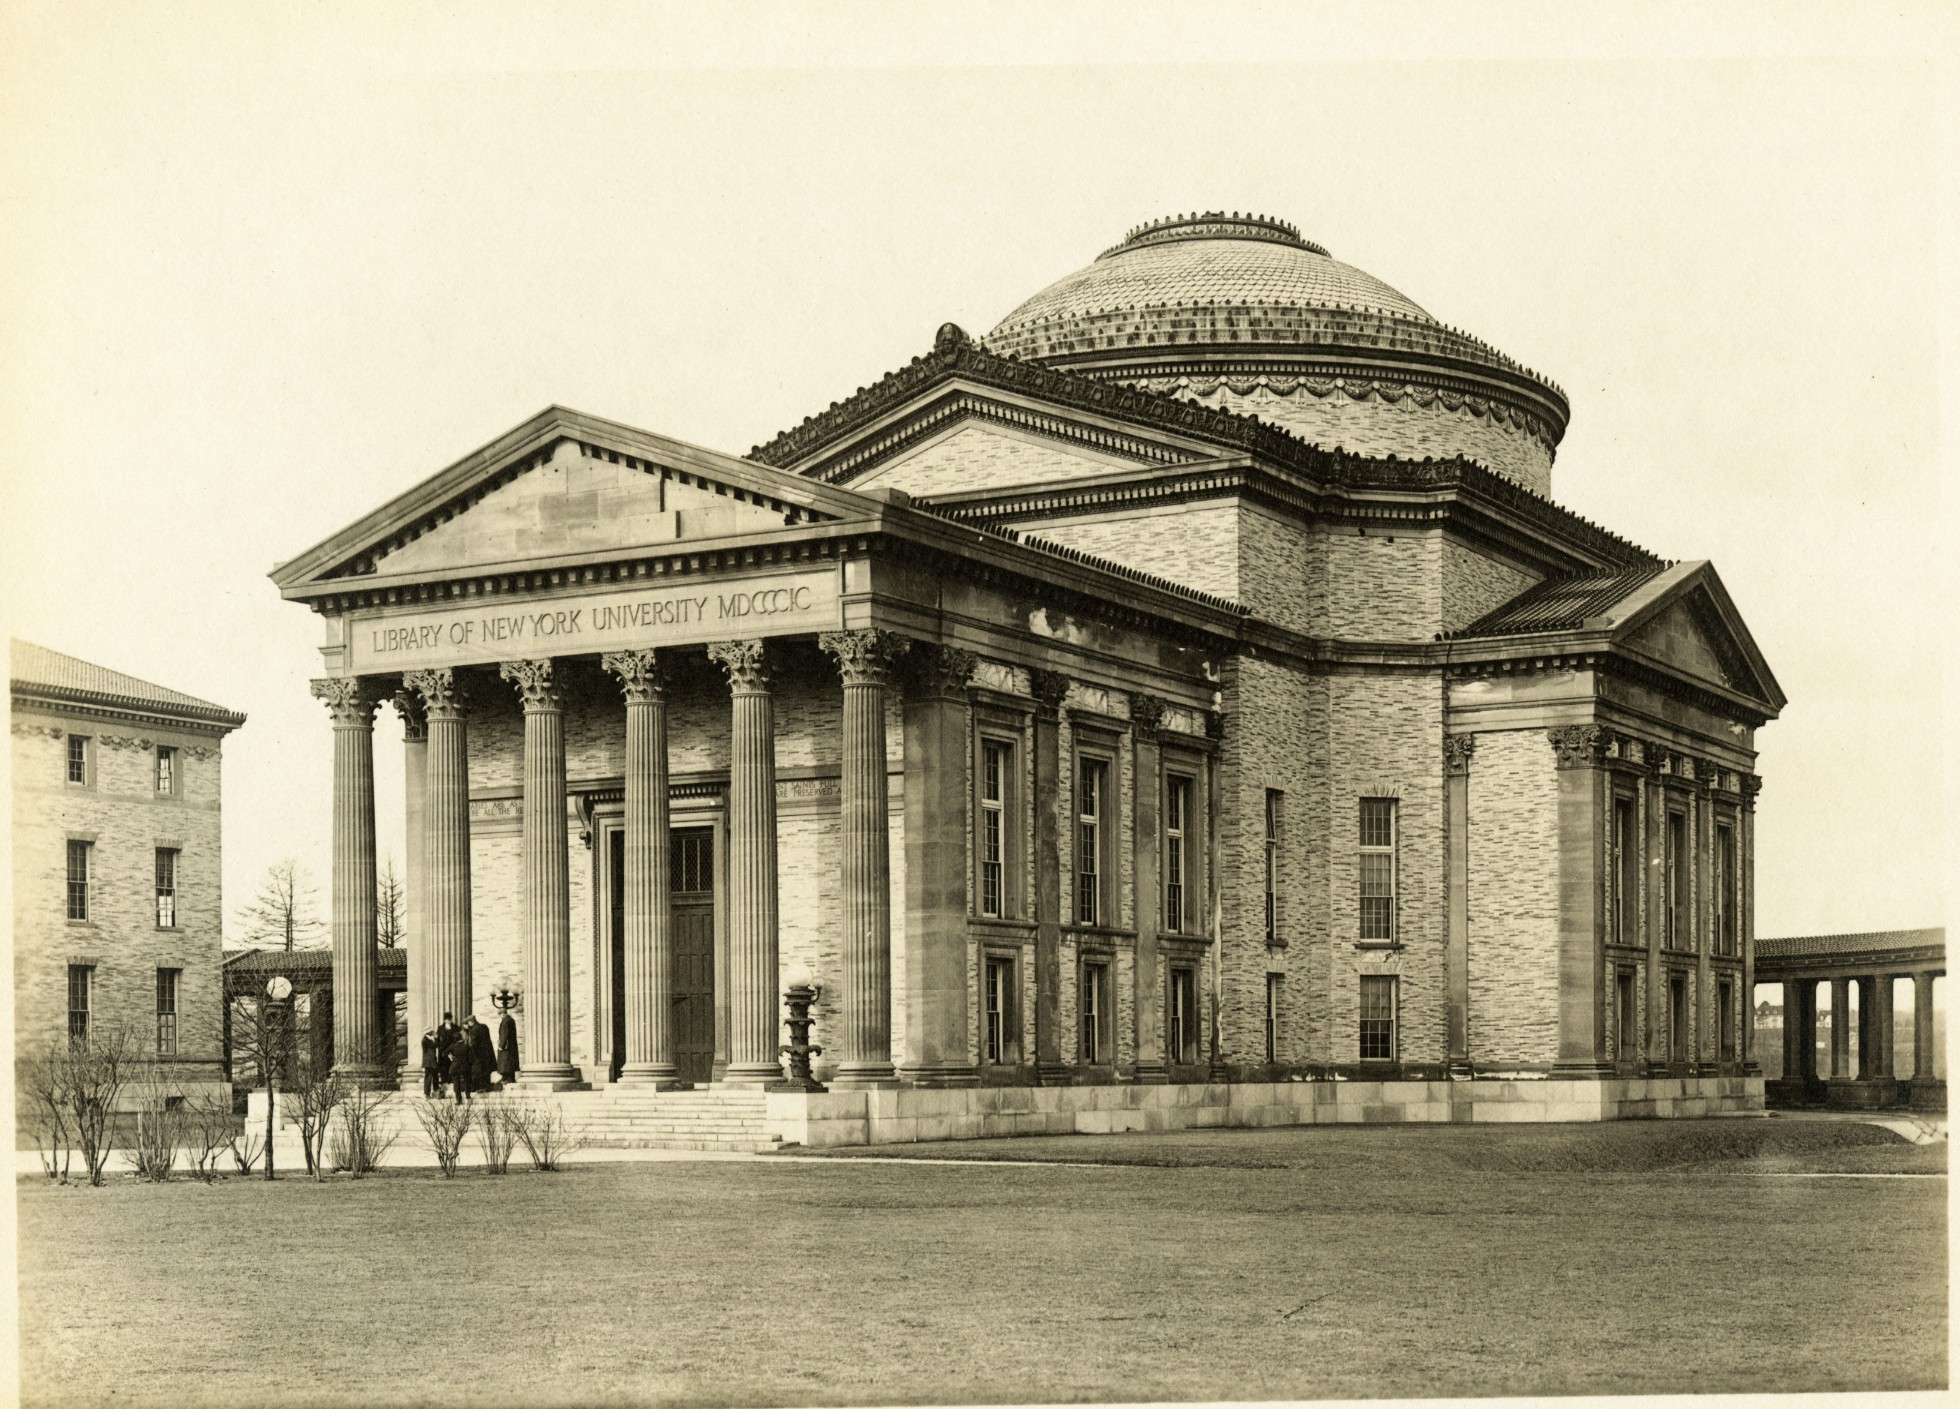 Stanford White's Gould Memorial Library soon after its completion. Photo:New York University Archives